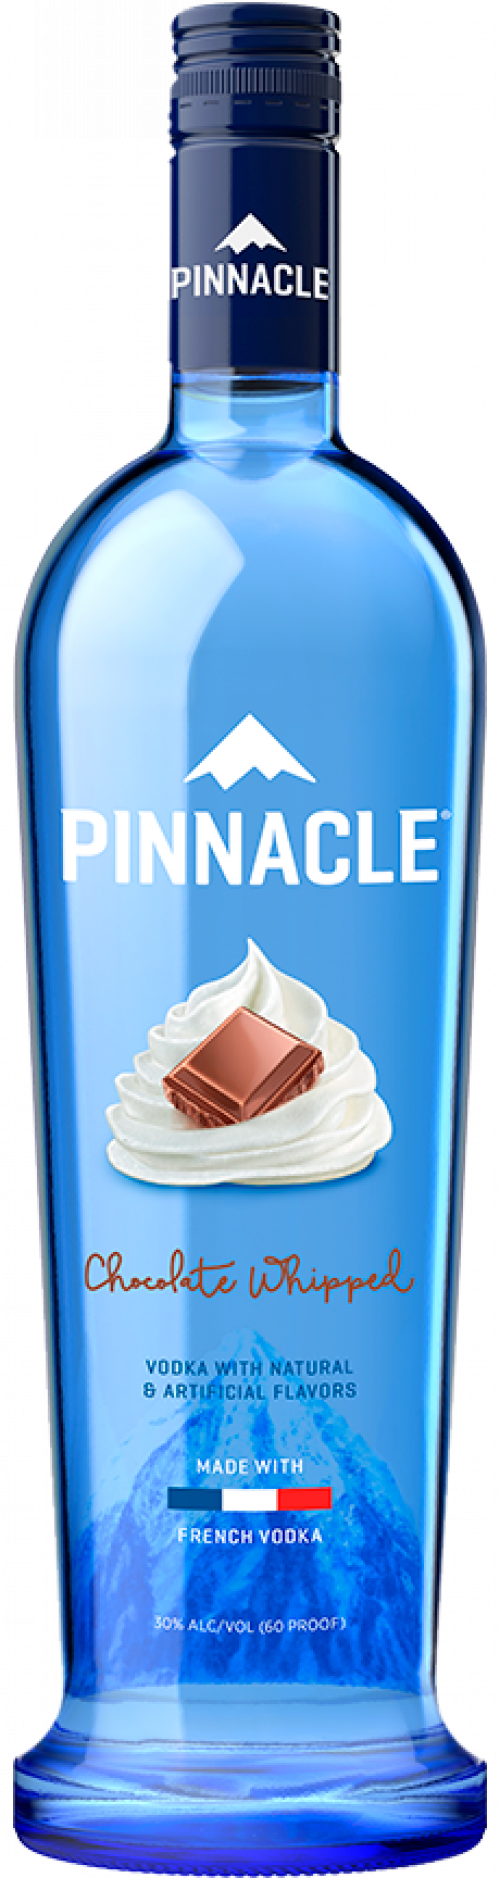 Pinnacle Chocolate Whipped 1.75L